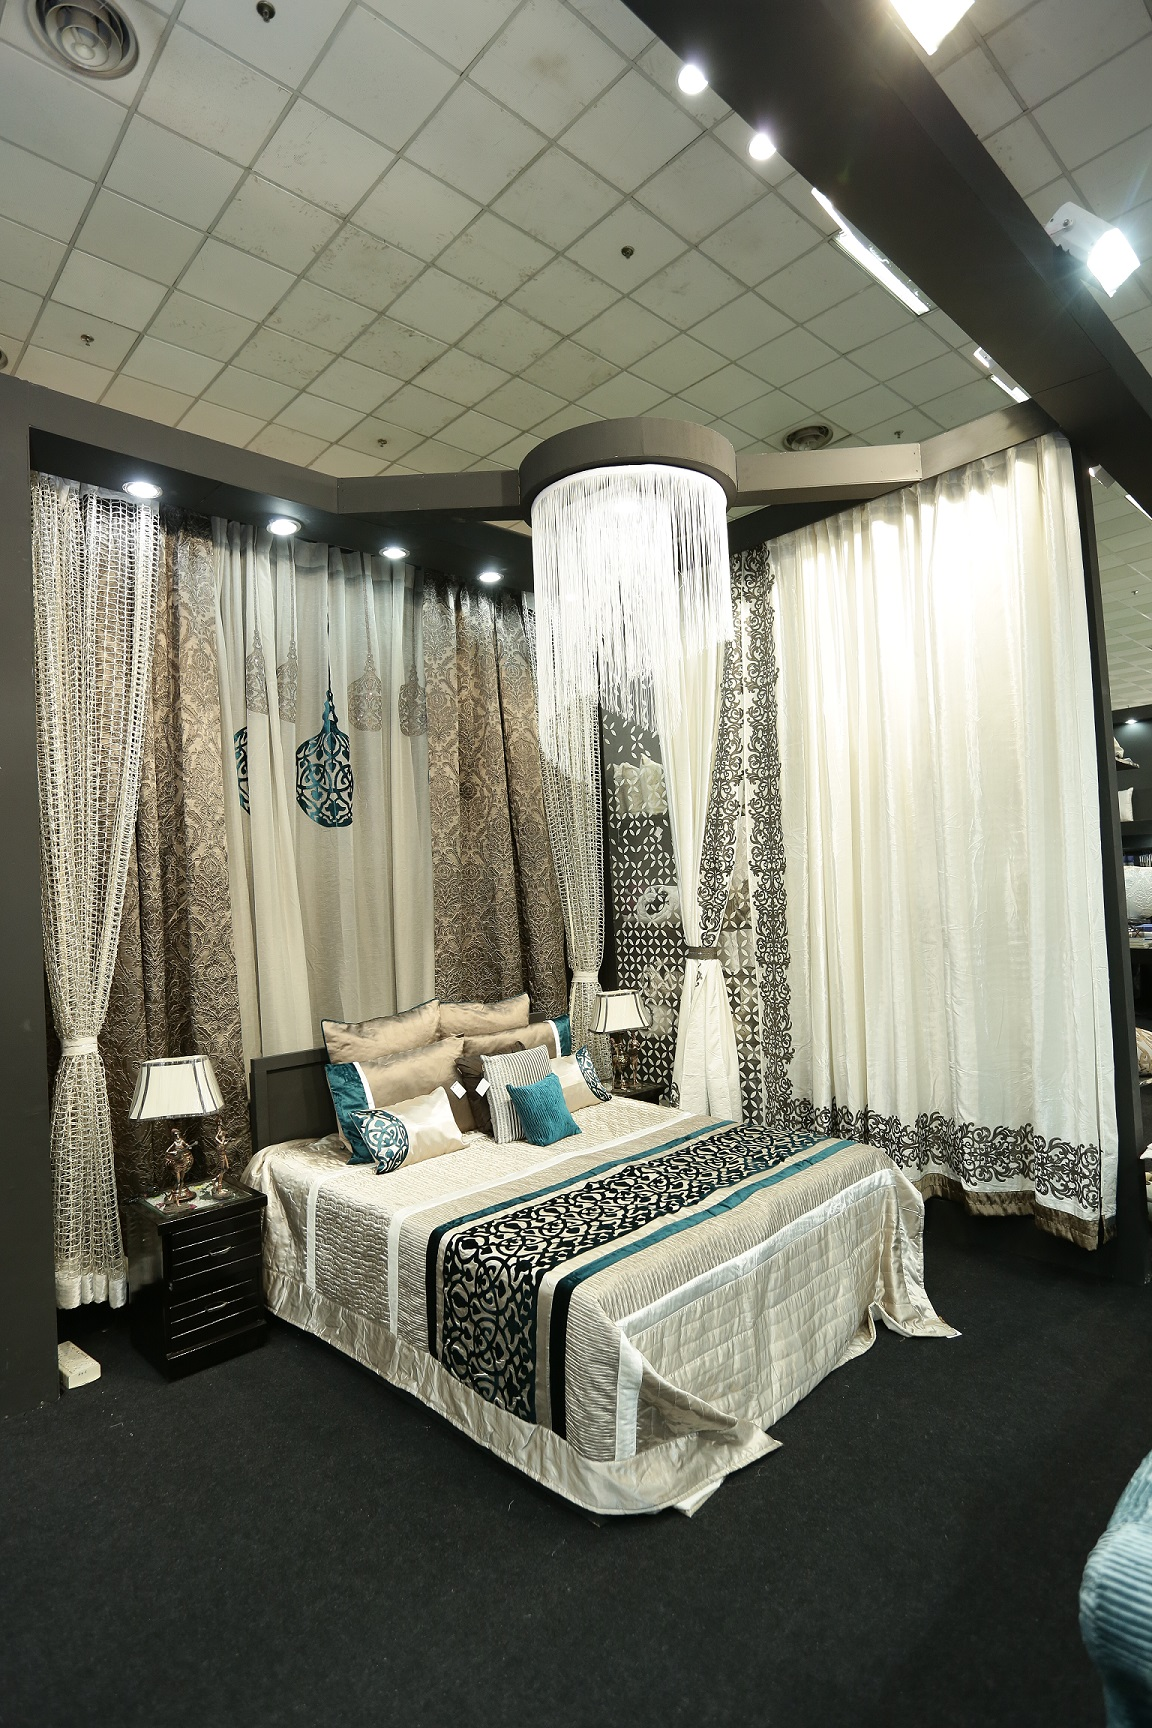 heimtextil india 2015 a successful start with over 50 space booked experience to home fashion buyers in india by offering the widest spectrum of interior lifestyle furnishing collectibles and home decor products all